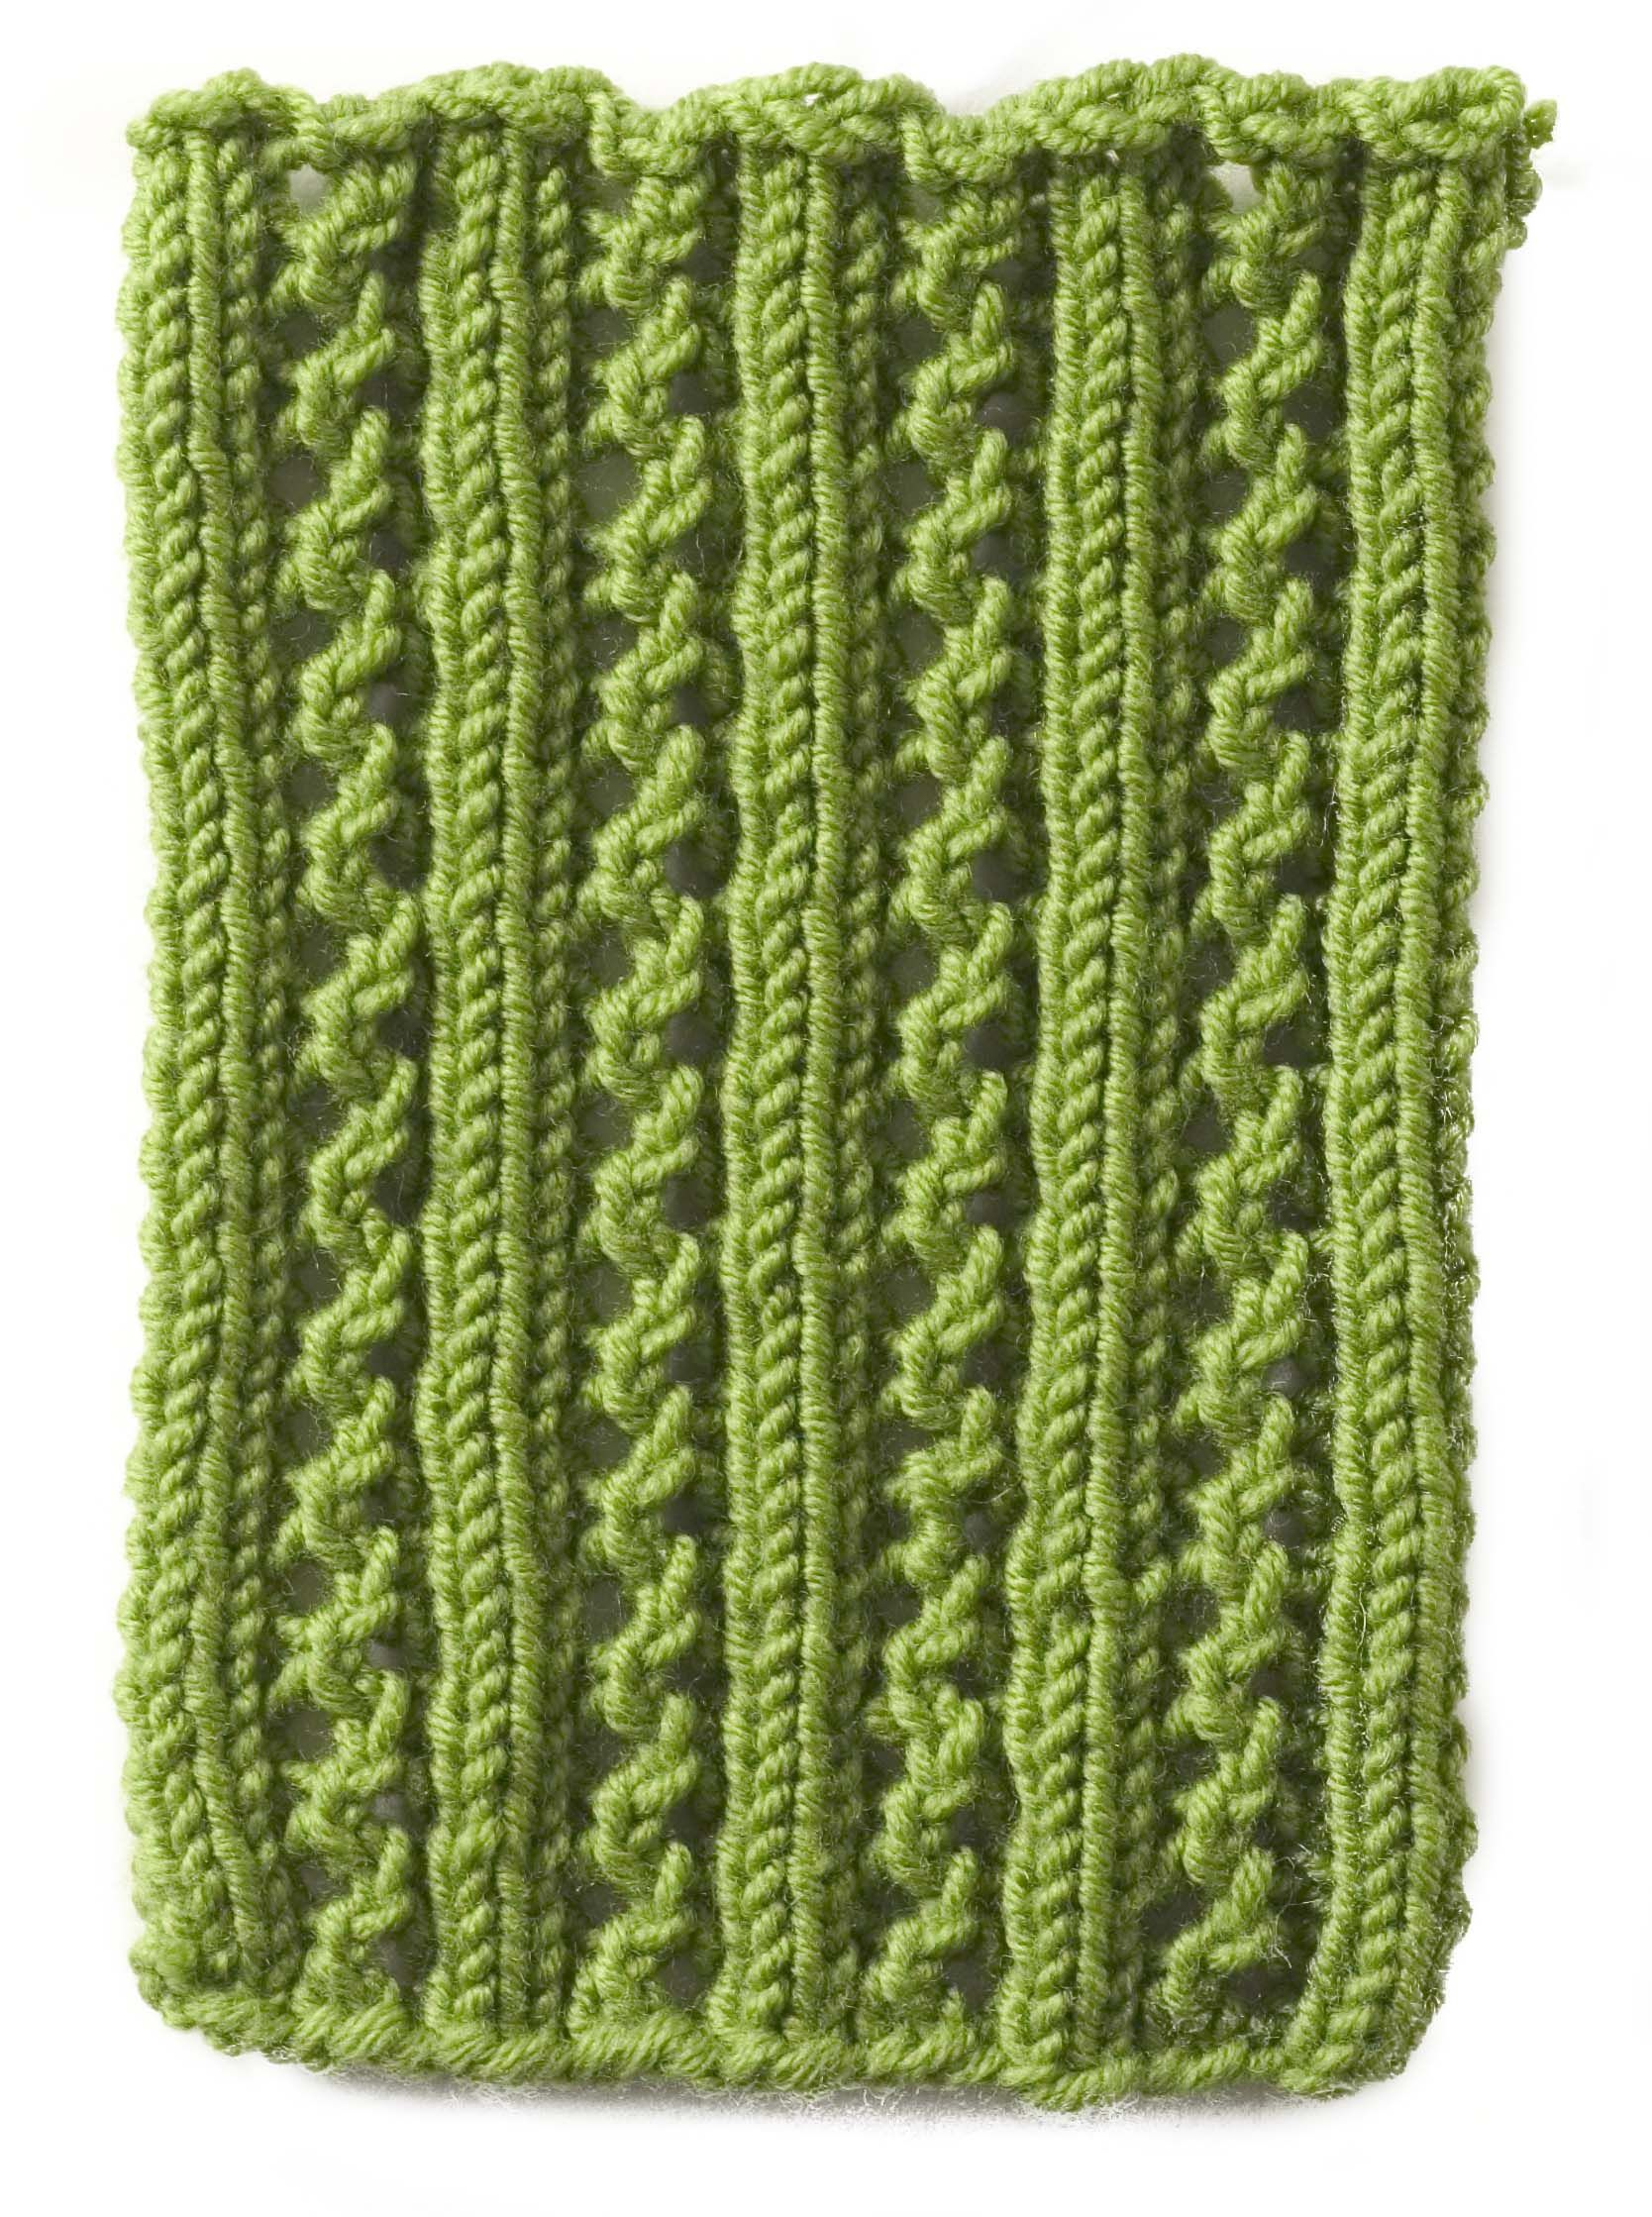 Stitchfinder : Knitting Pattern: Lace Rib : Frequently-Asked ...